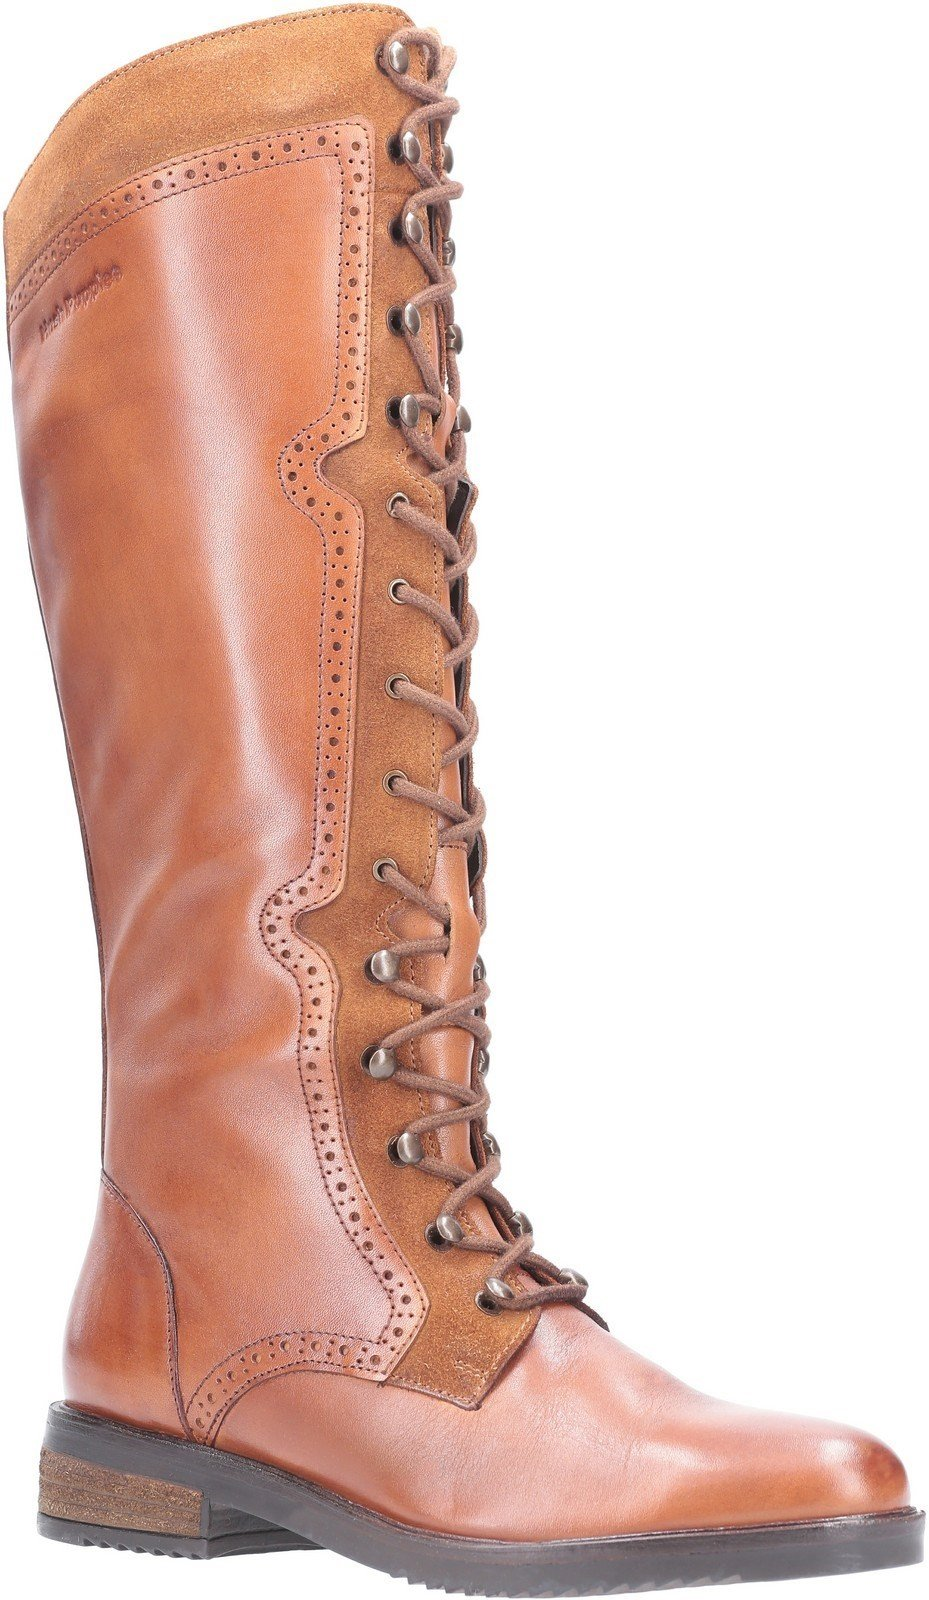 Hush Puppies Women's Rudy Zip Up Lace Up Long Boot Various Colours 29203 - Tan 3